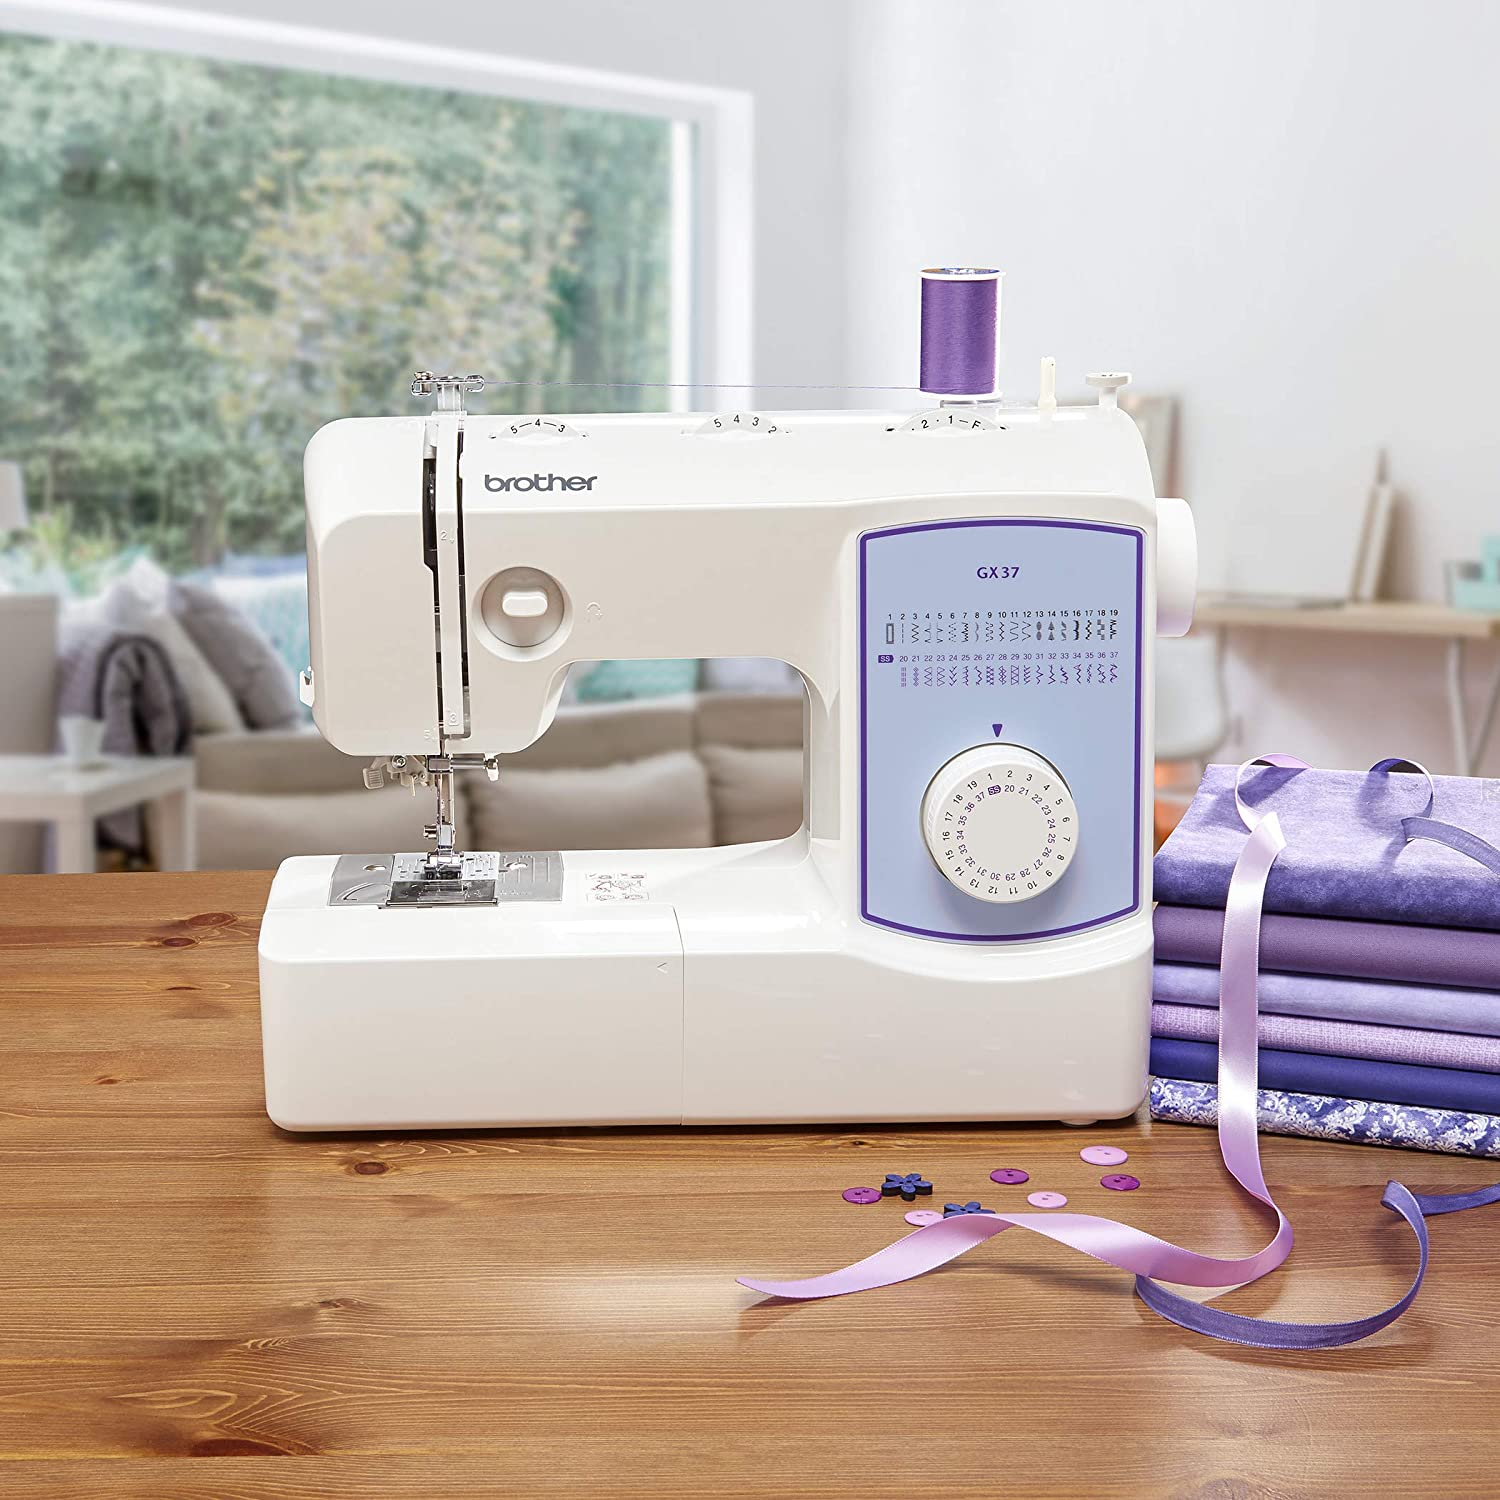 Brother GX37 Sewing Machine - For every user